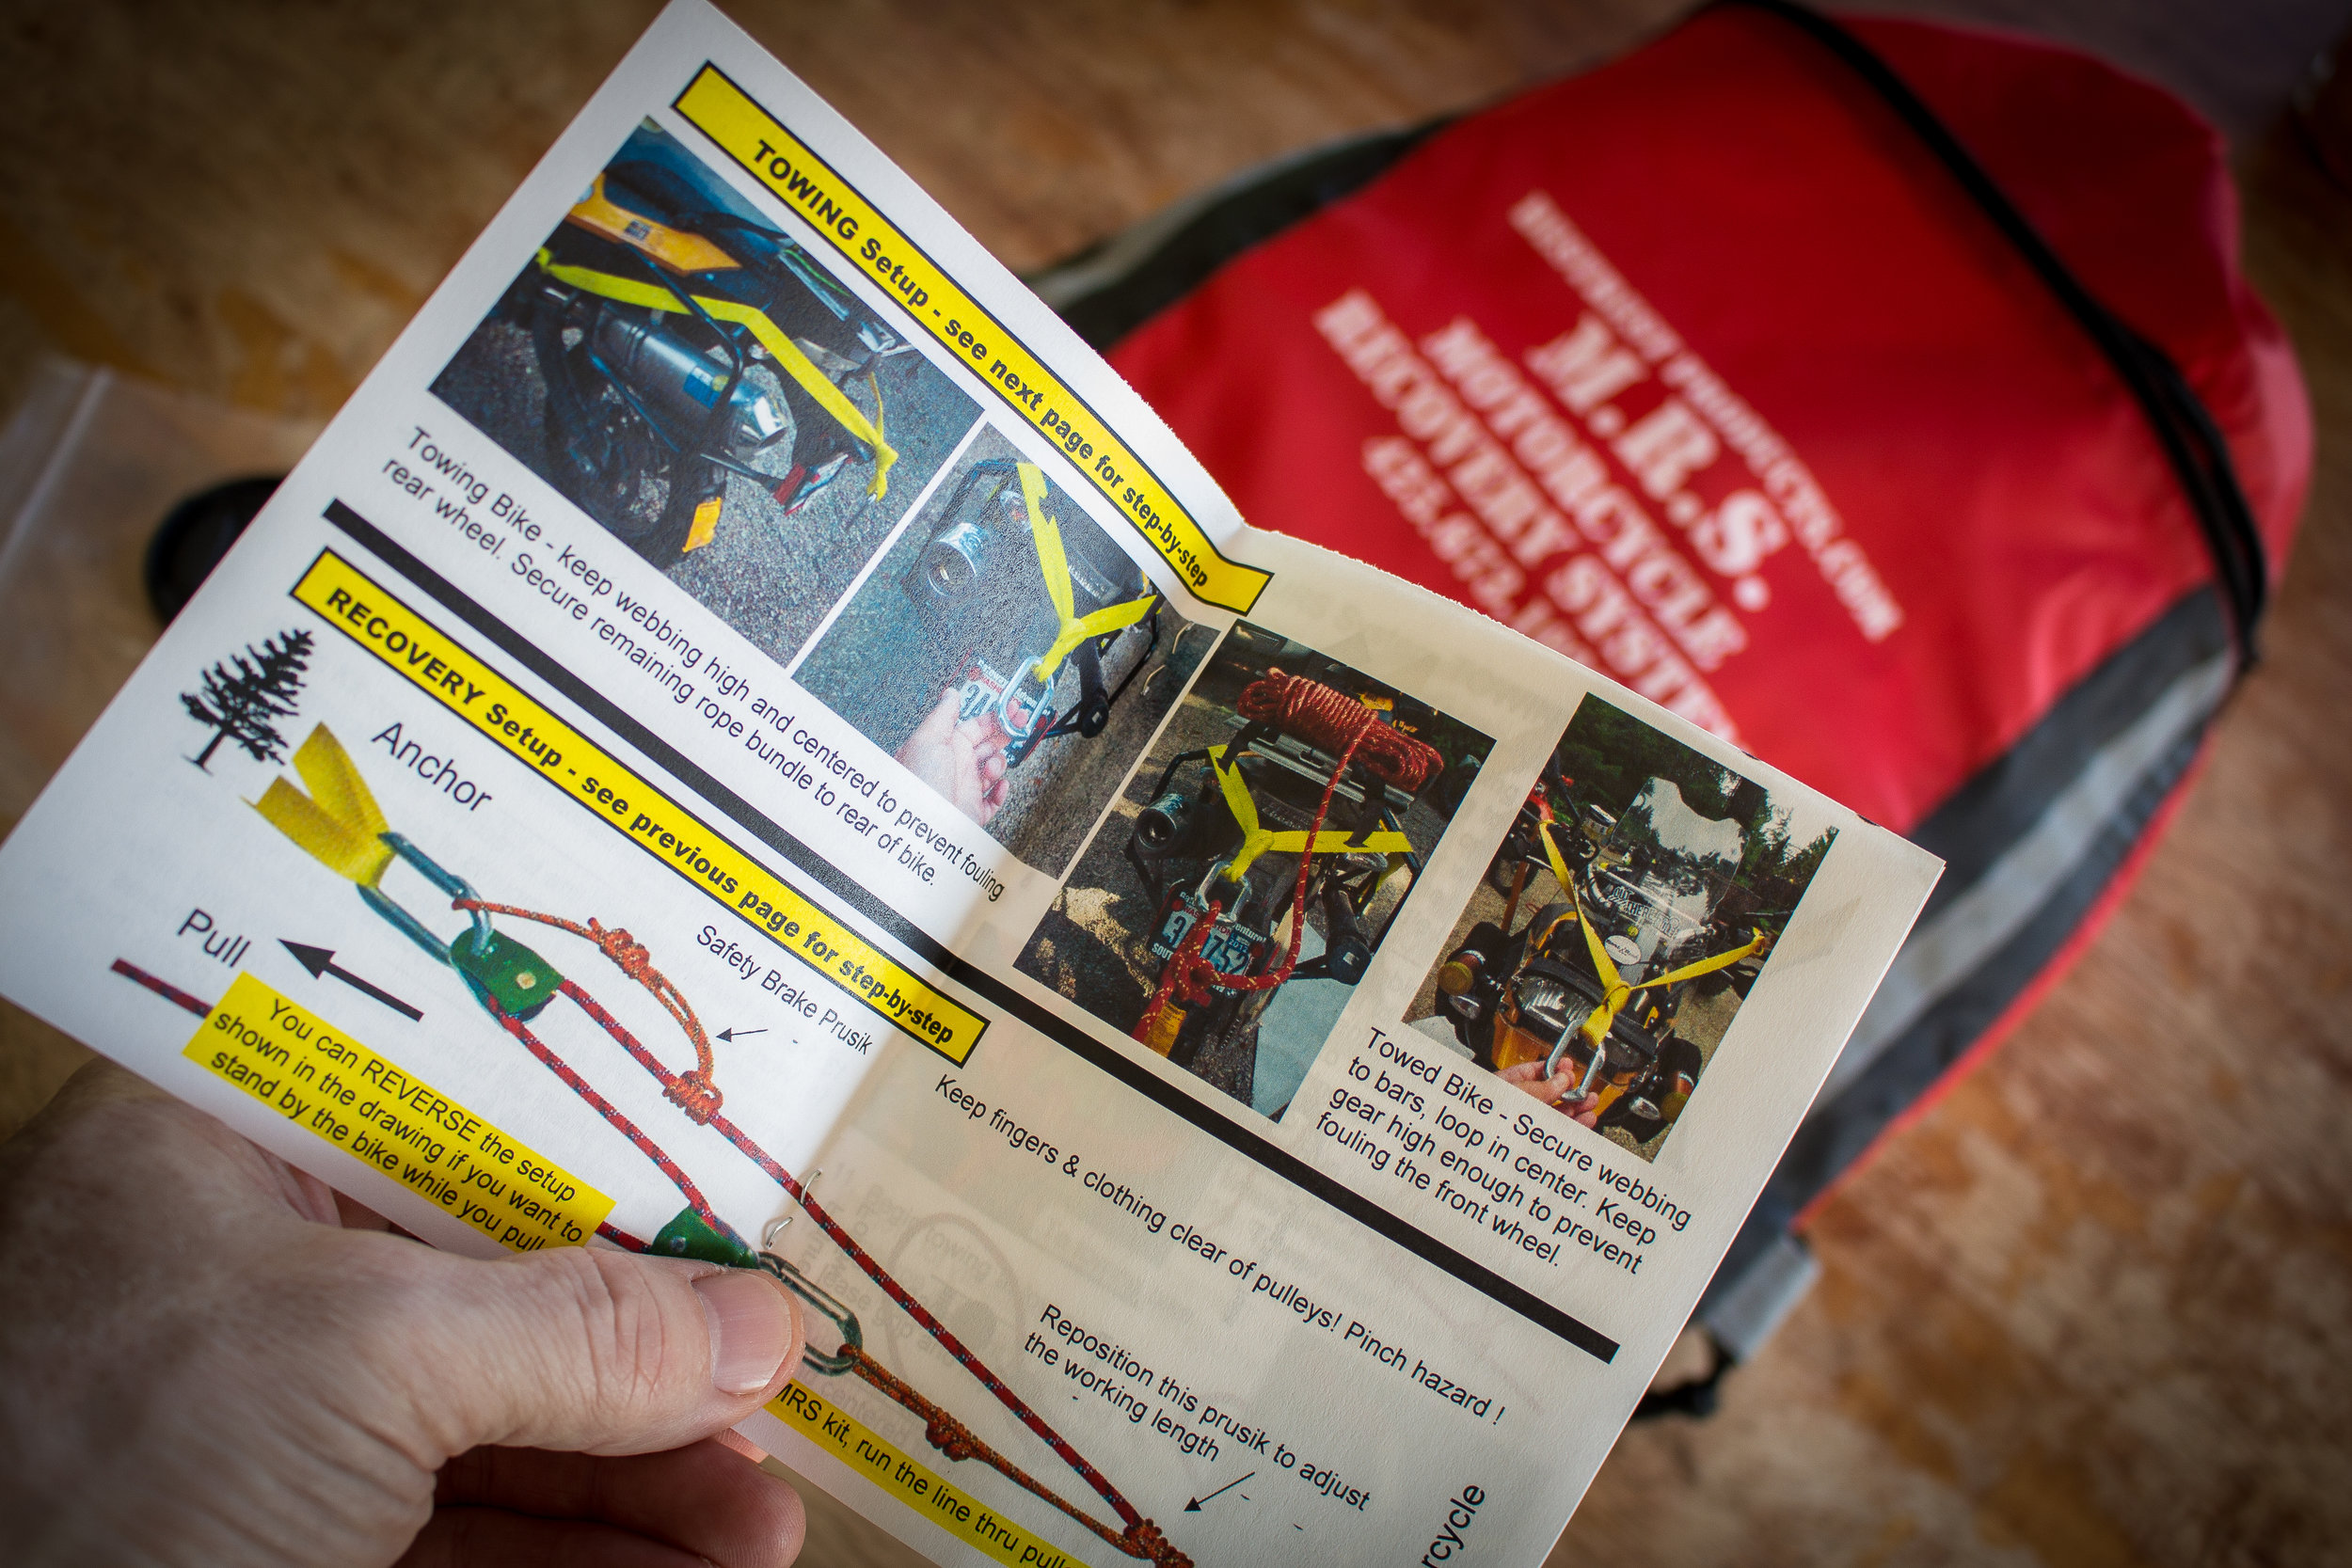 Motorcycle Extraction Gear - Adventure Rider Radio Motorcycle Podcast (1 of 1)-3.jpg